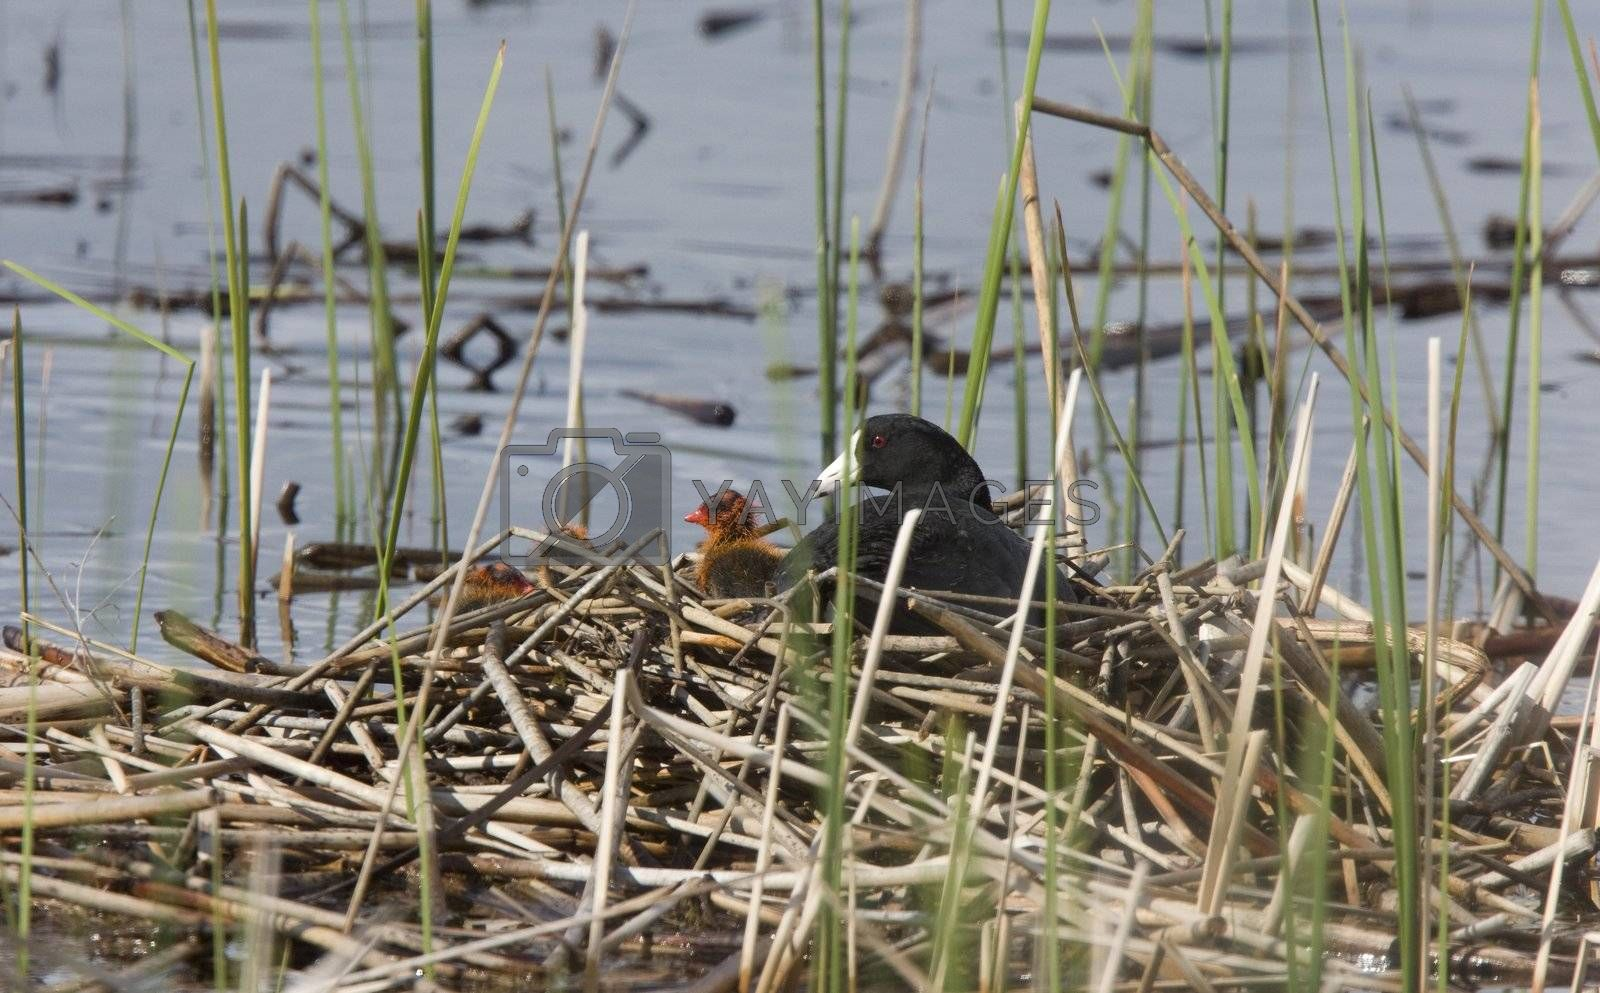 Royalty free image of Coot or Waterhen with babies by pictureguy